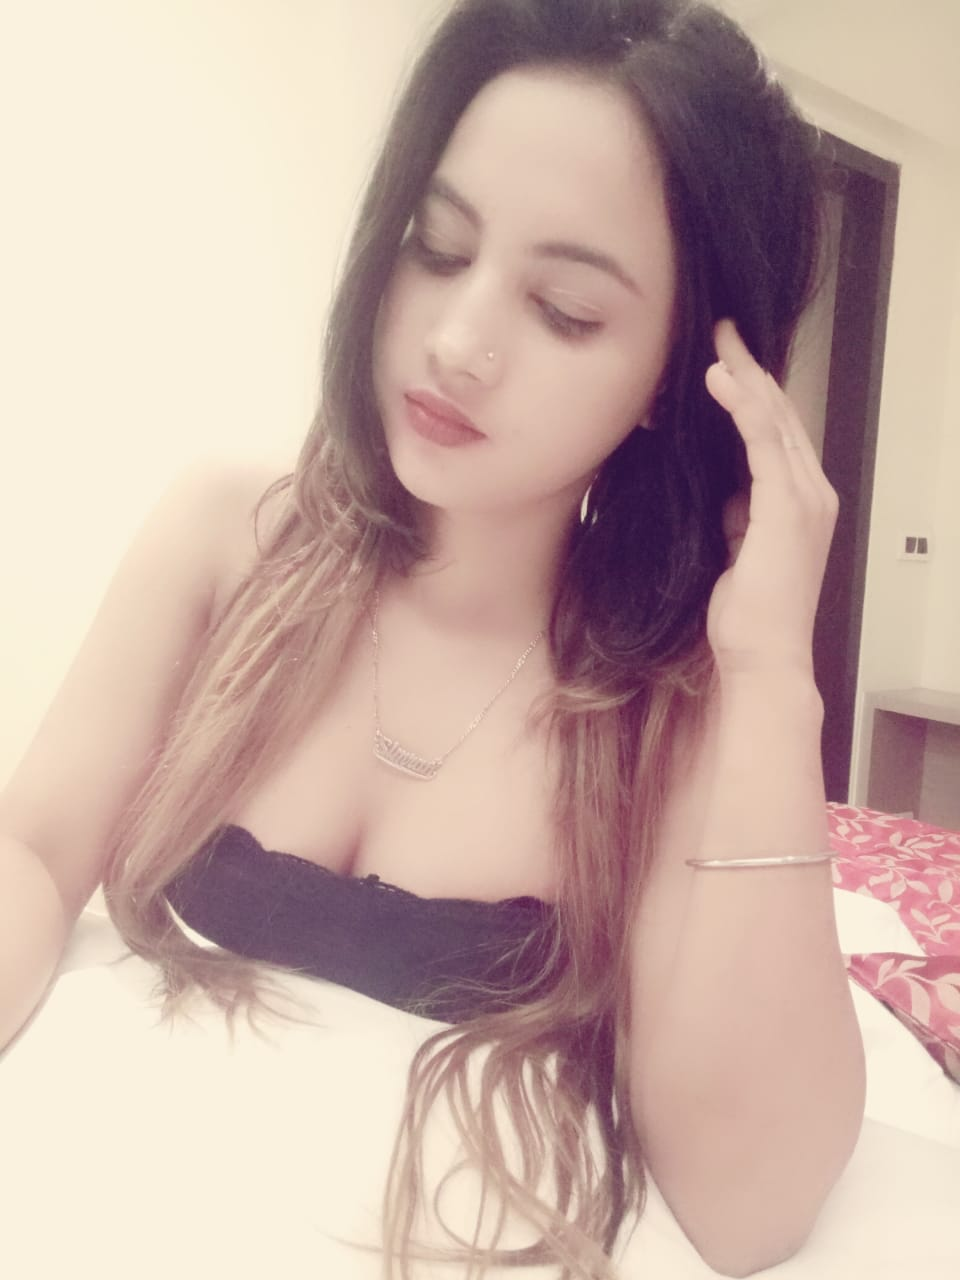 Russian Escorts In  Kandivali